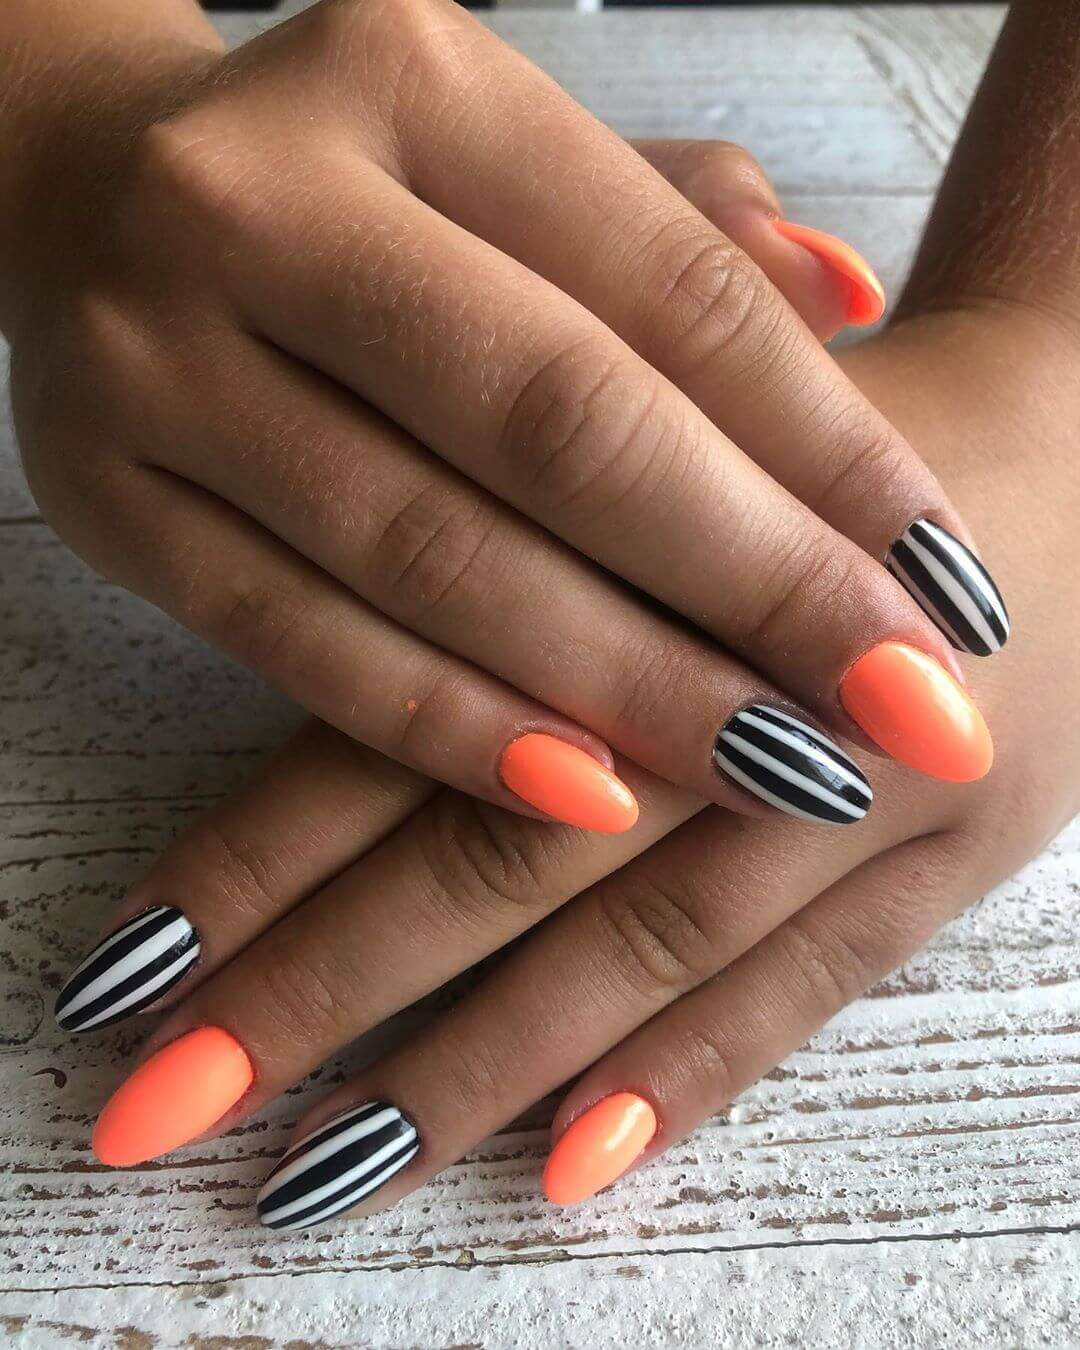 Neon orange with black and white nails